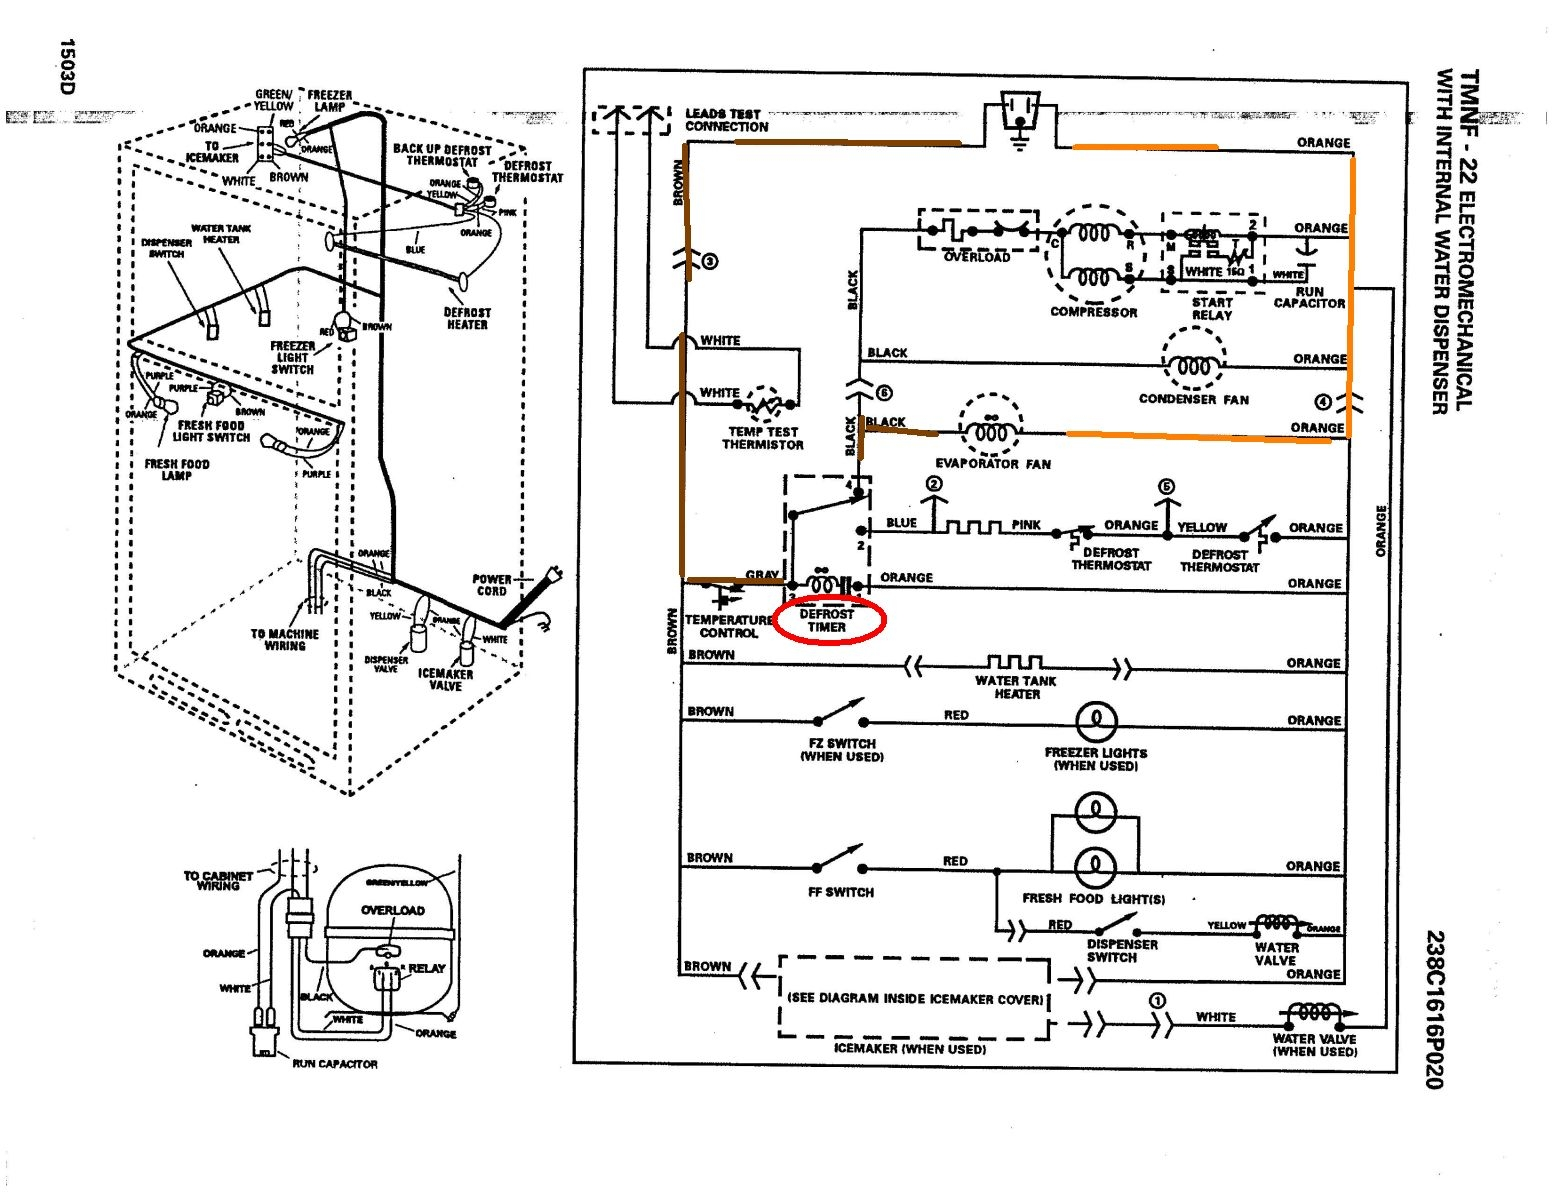 hight resolution of whirlpool gc5shgxls00 schematic wiring wiring diagram diagram refrigerator